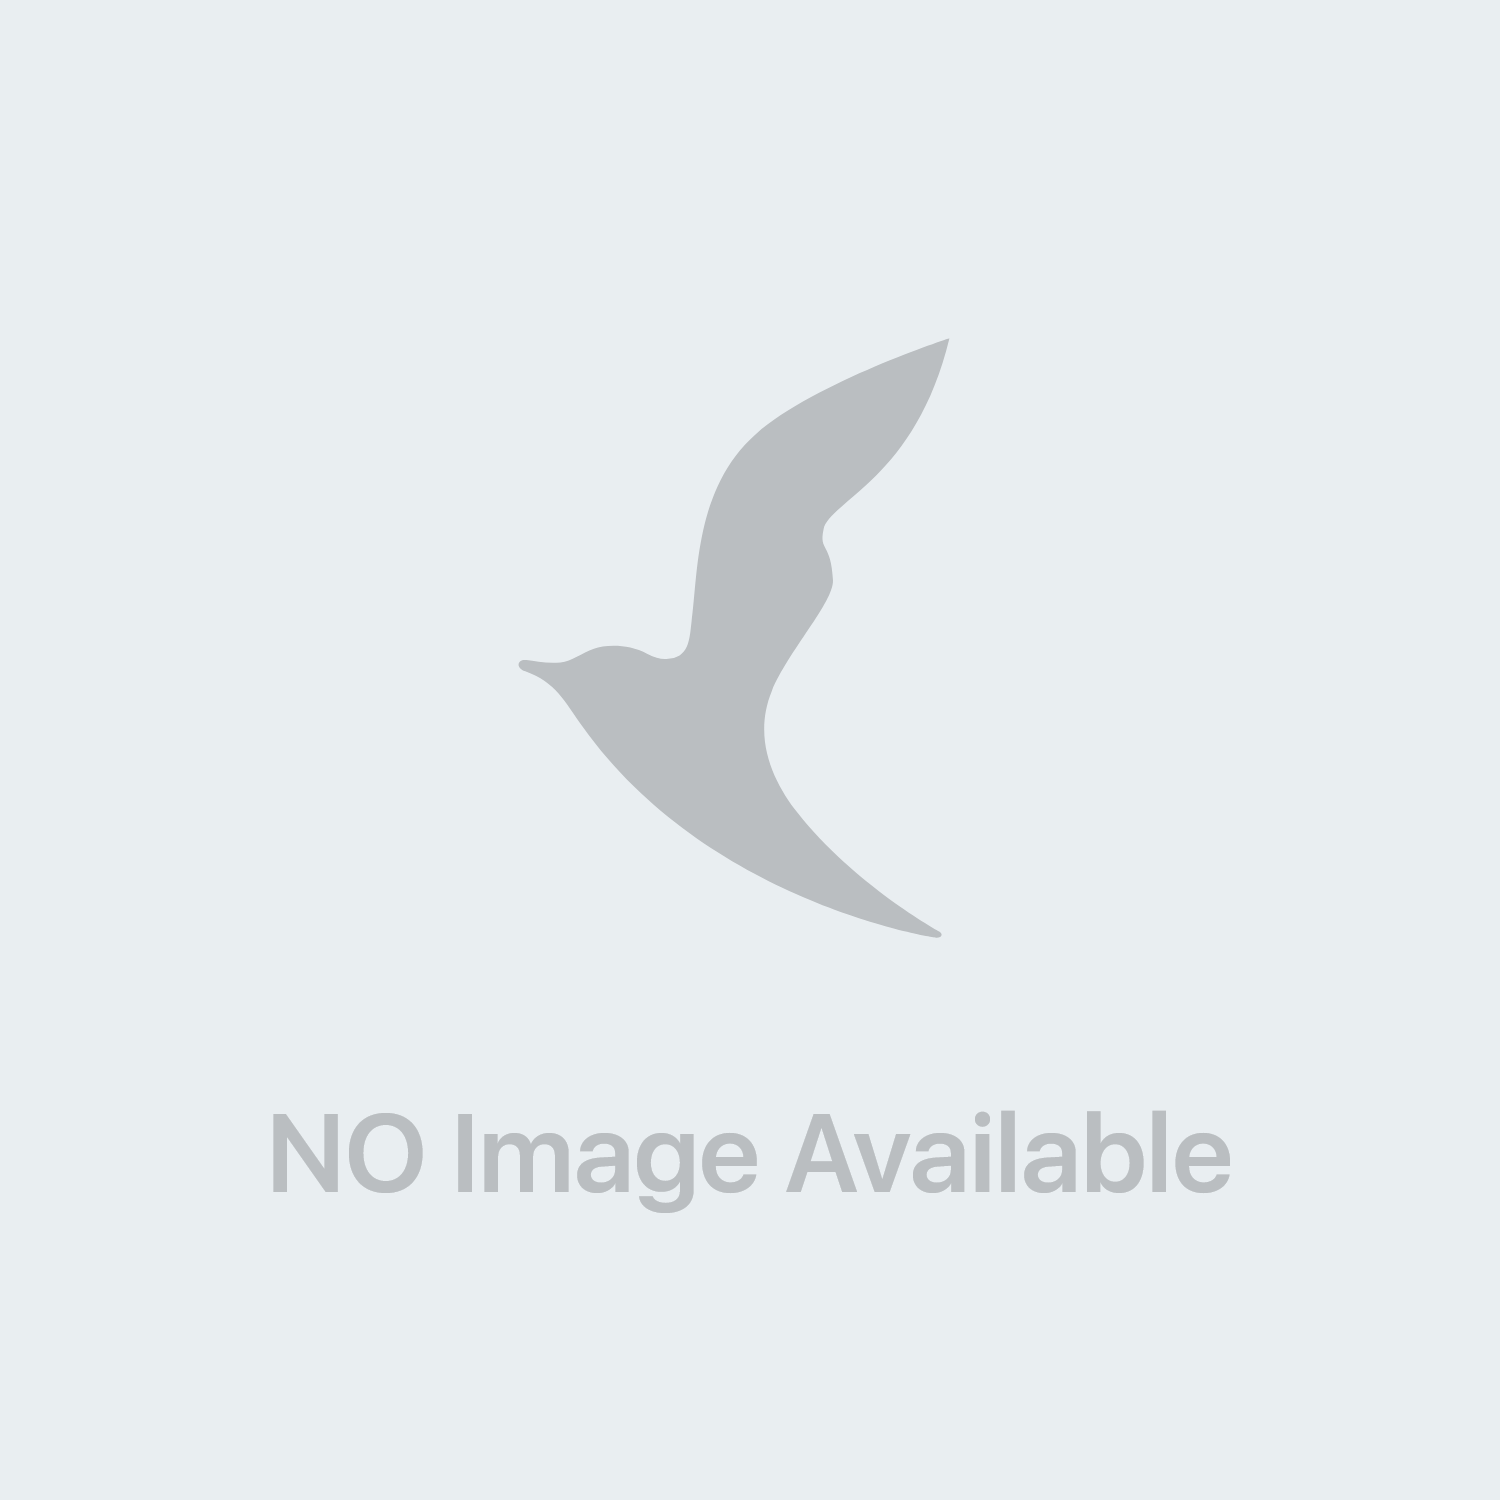 Dulcolax Adulti 6 Supposte 10 mg